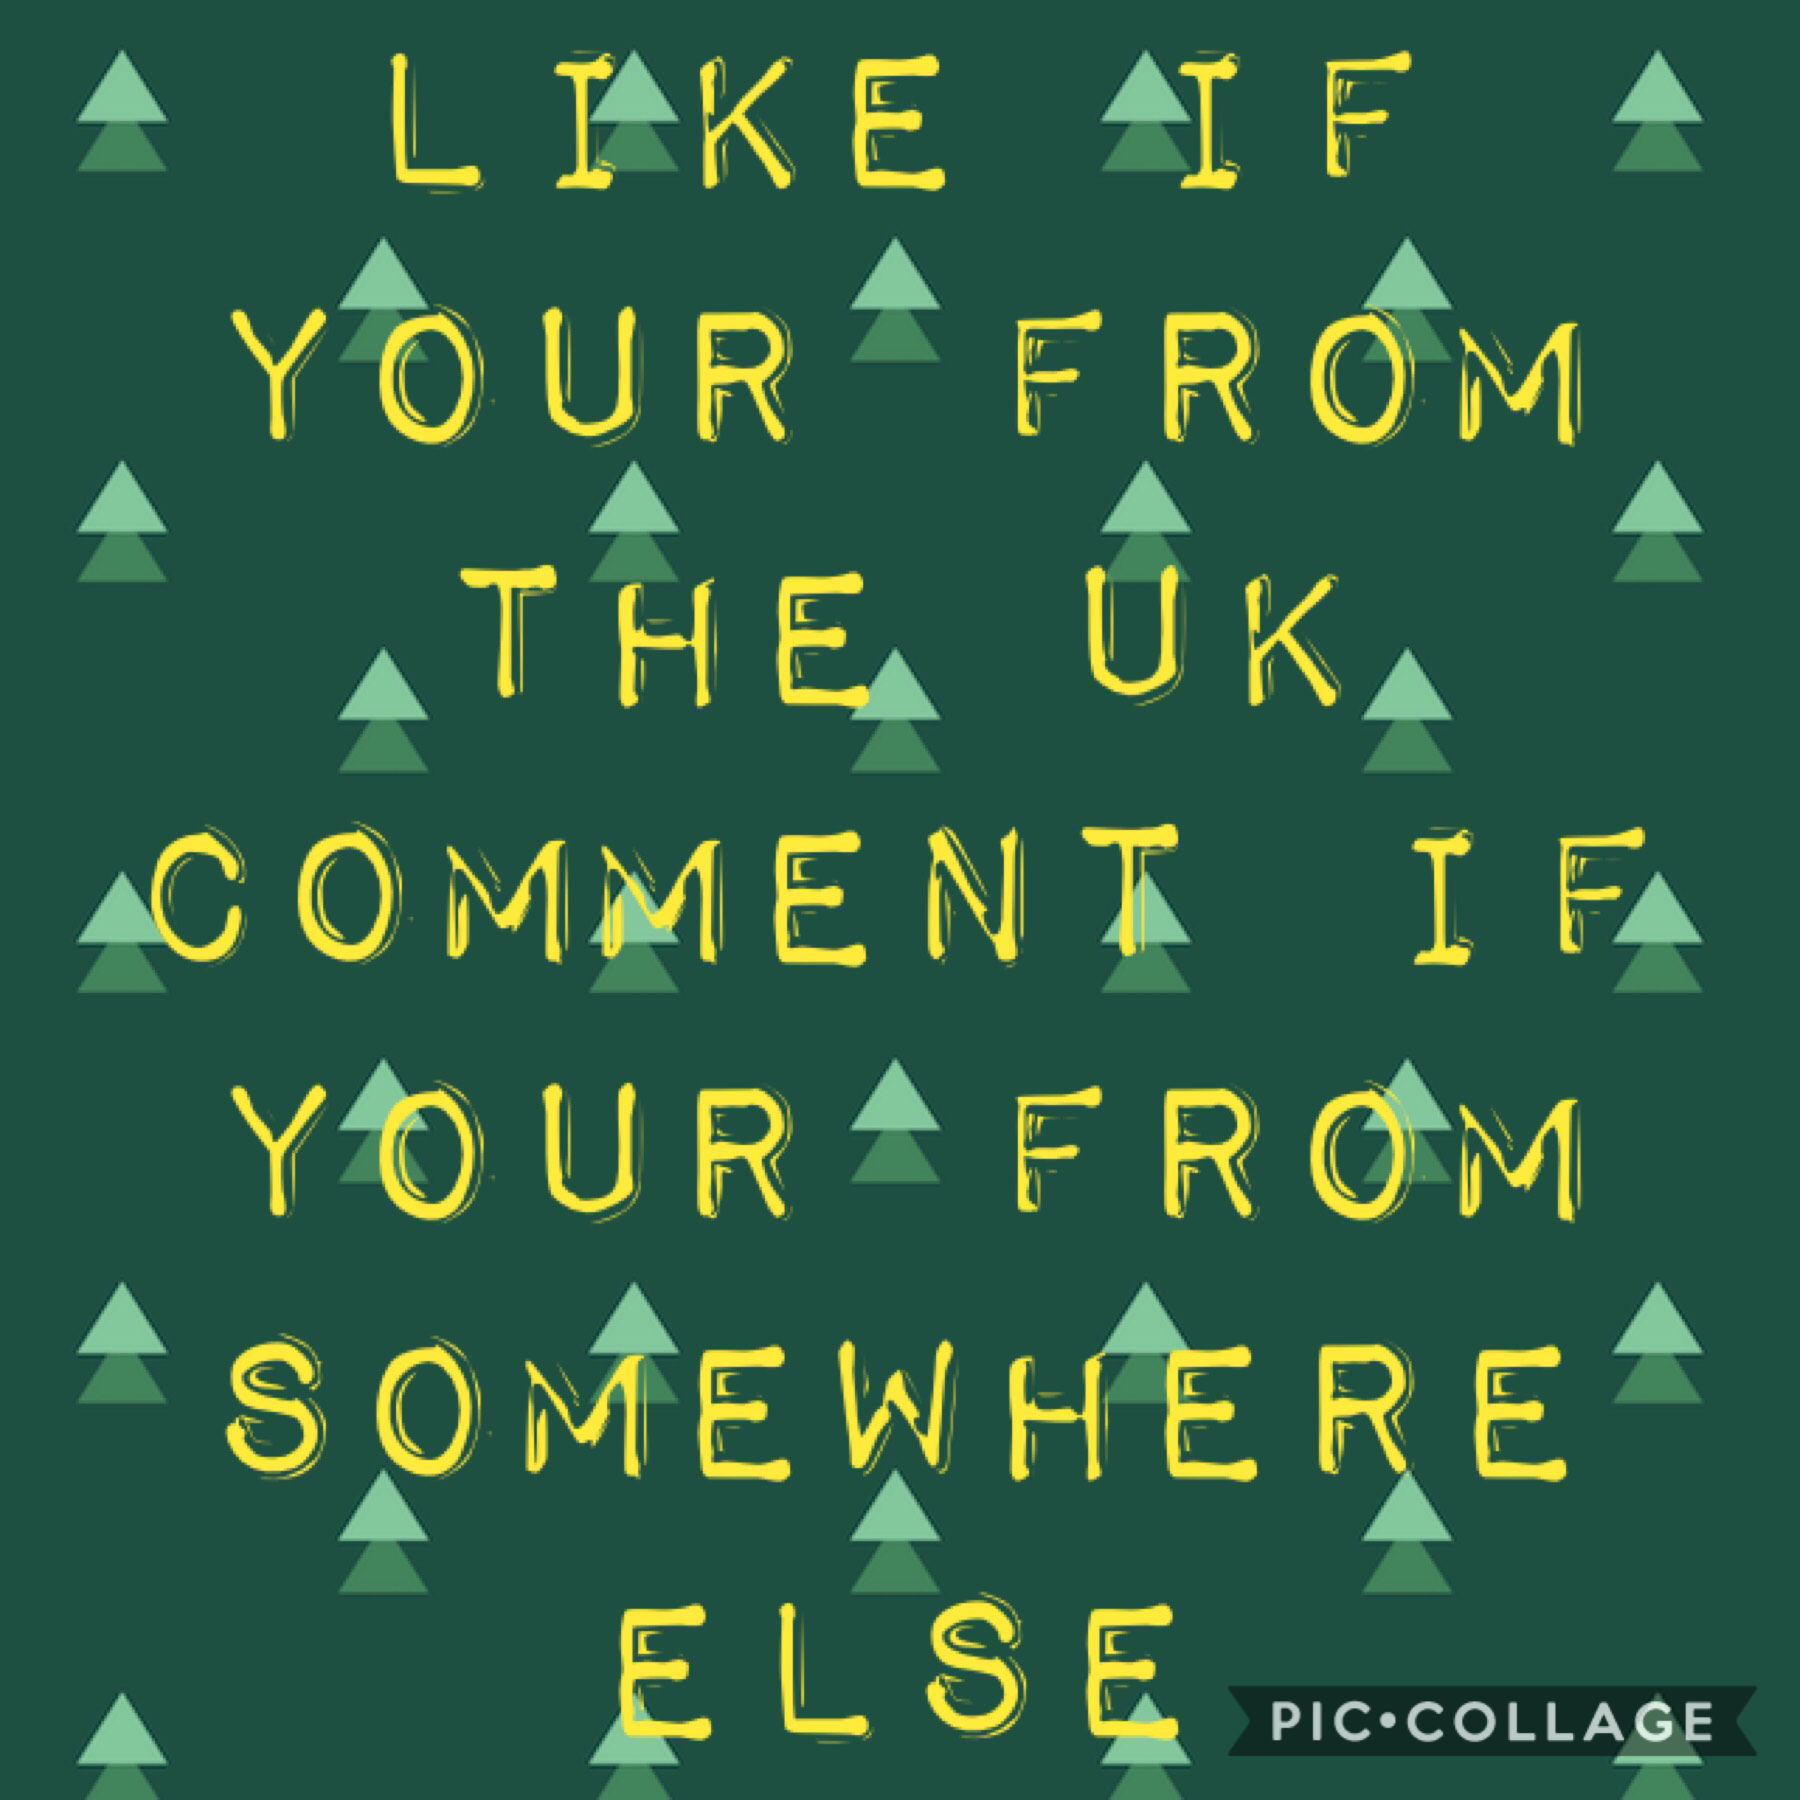 ❤️ I liked cause I'm from the uk❤️